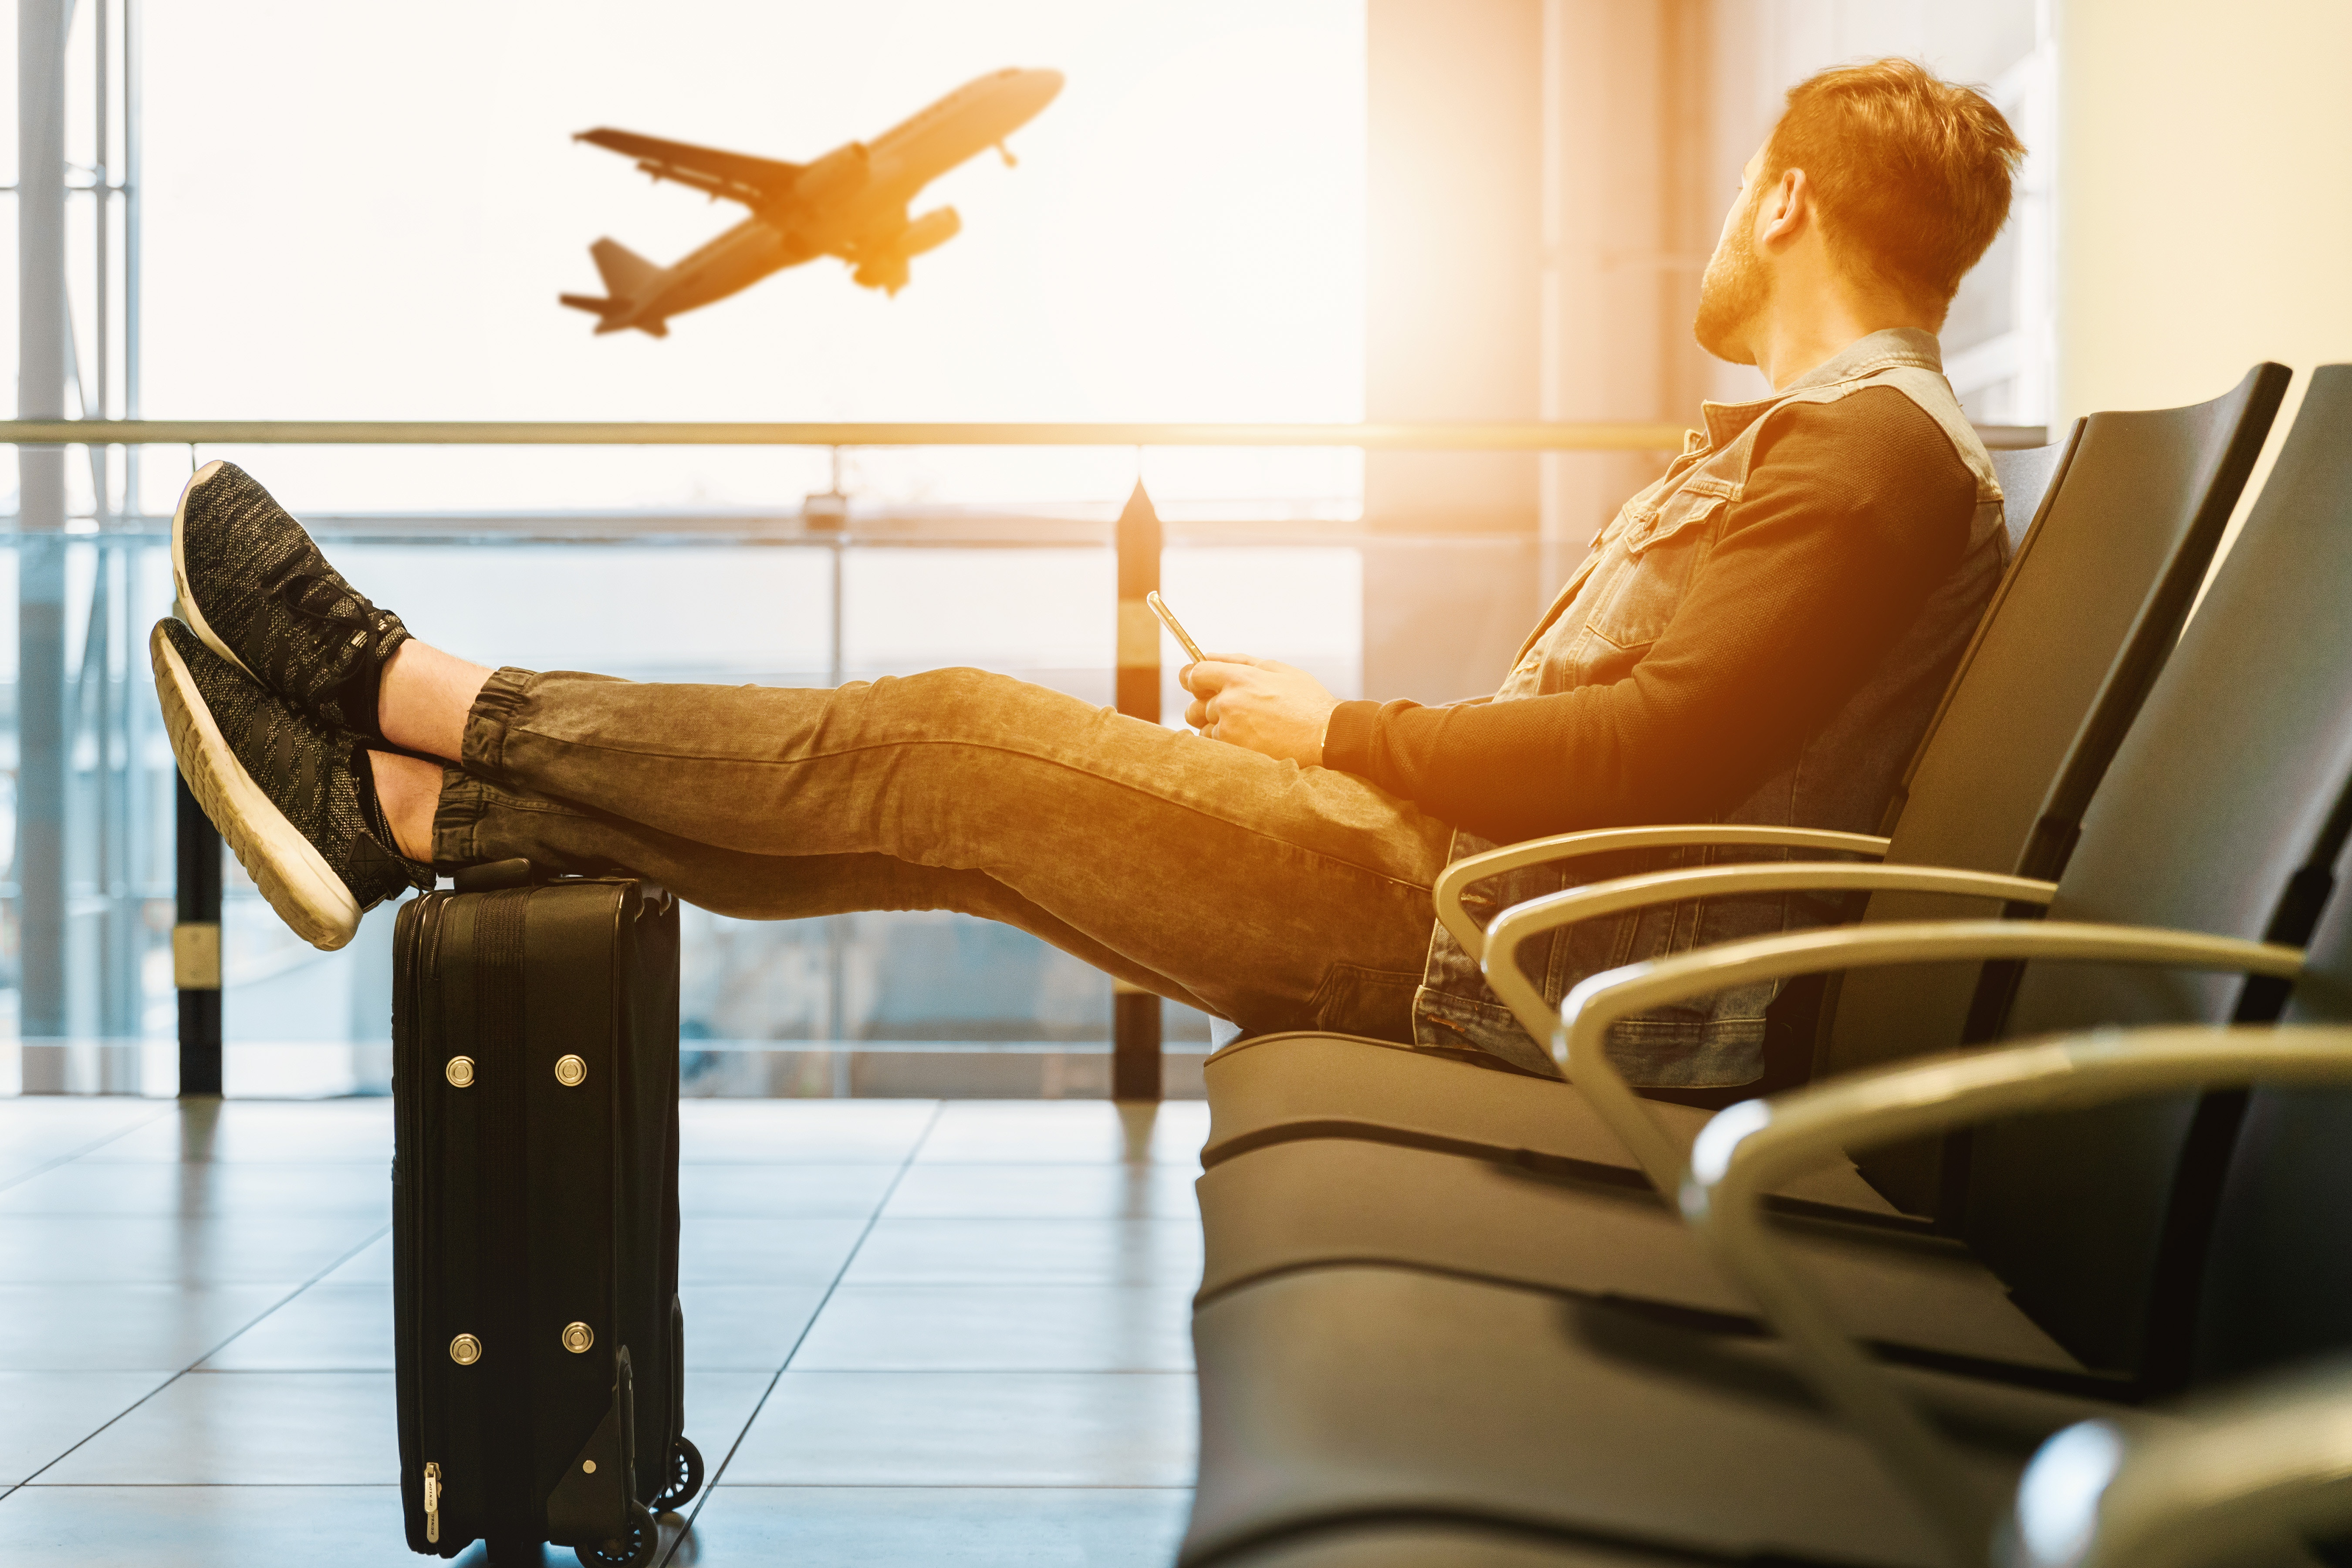 man sitting in airport chair looking out the window at airplane